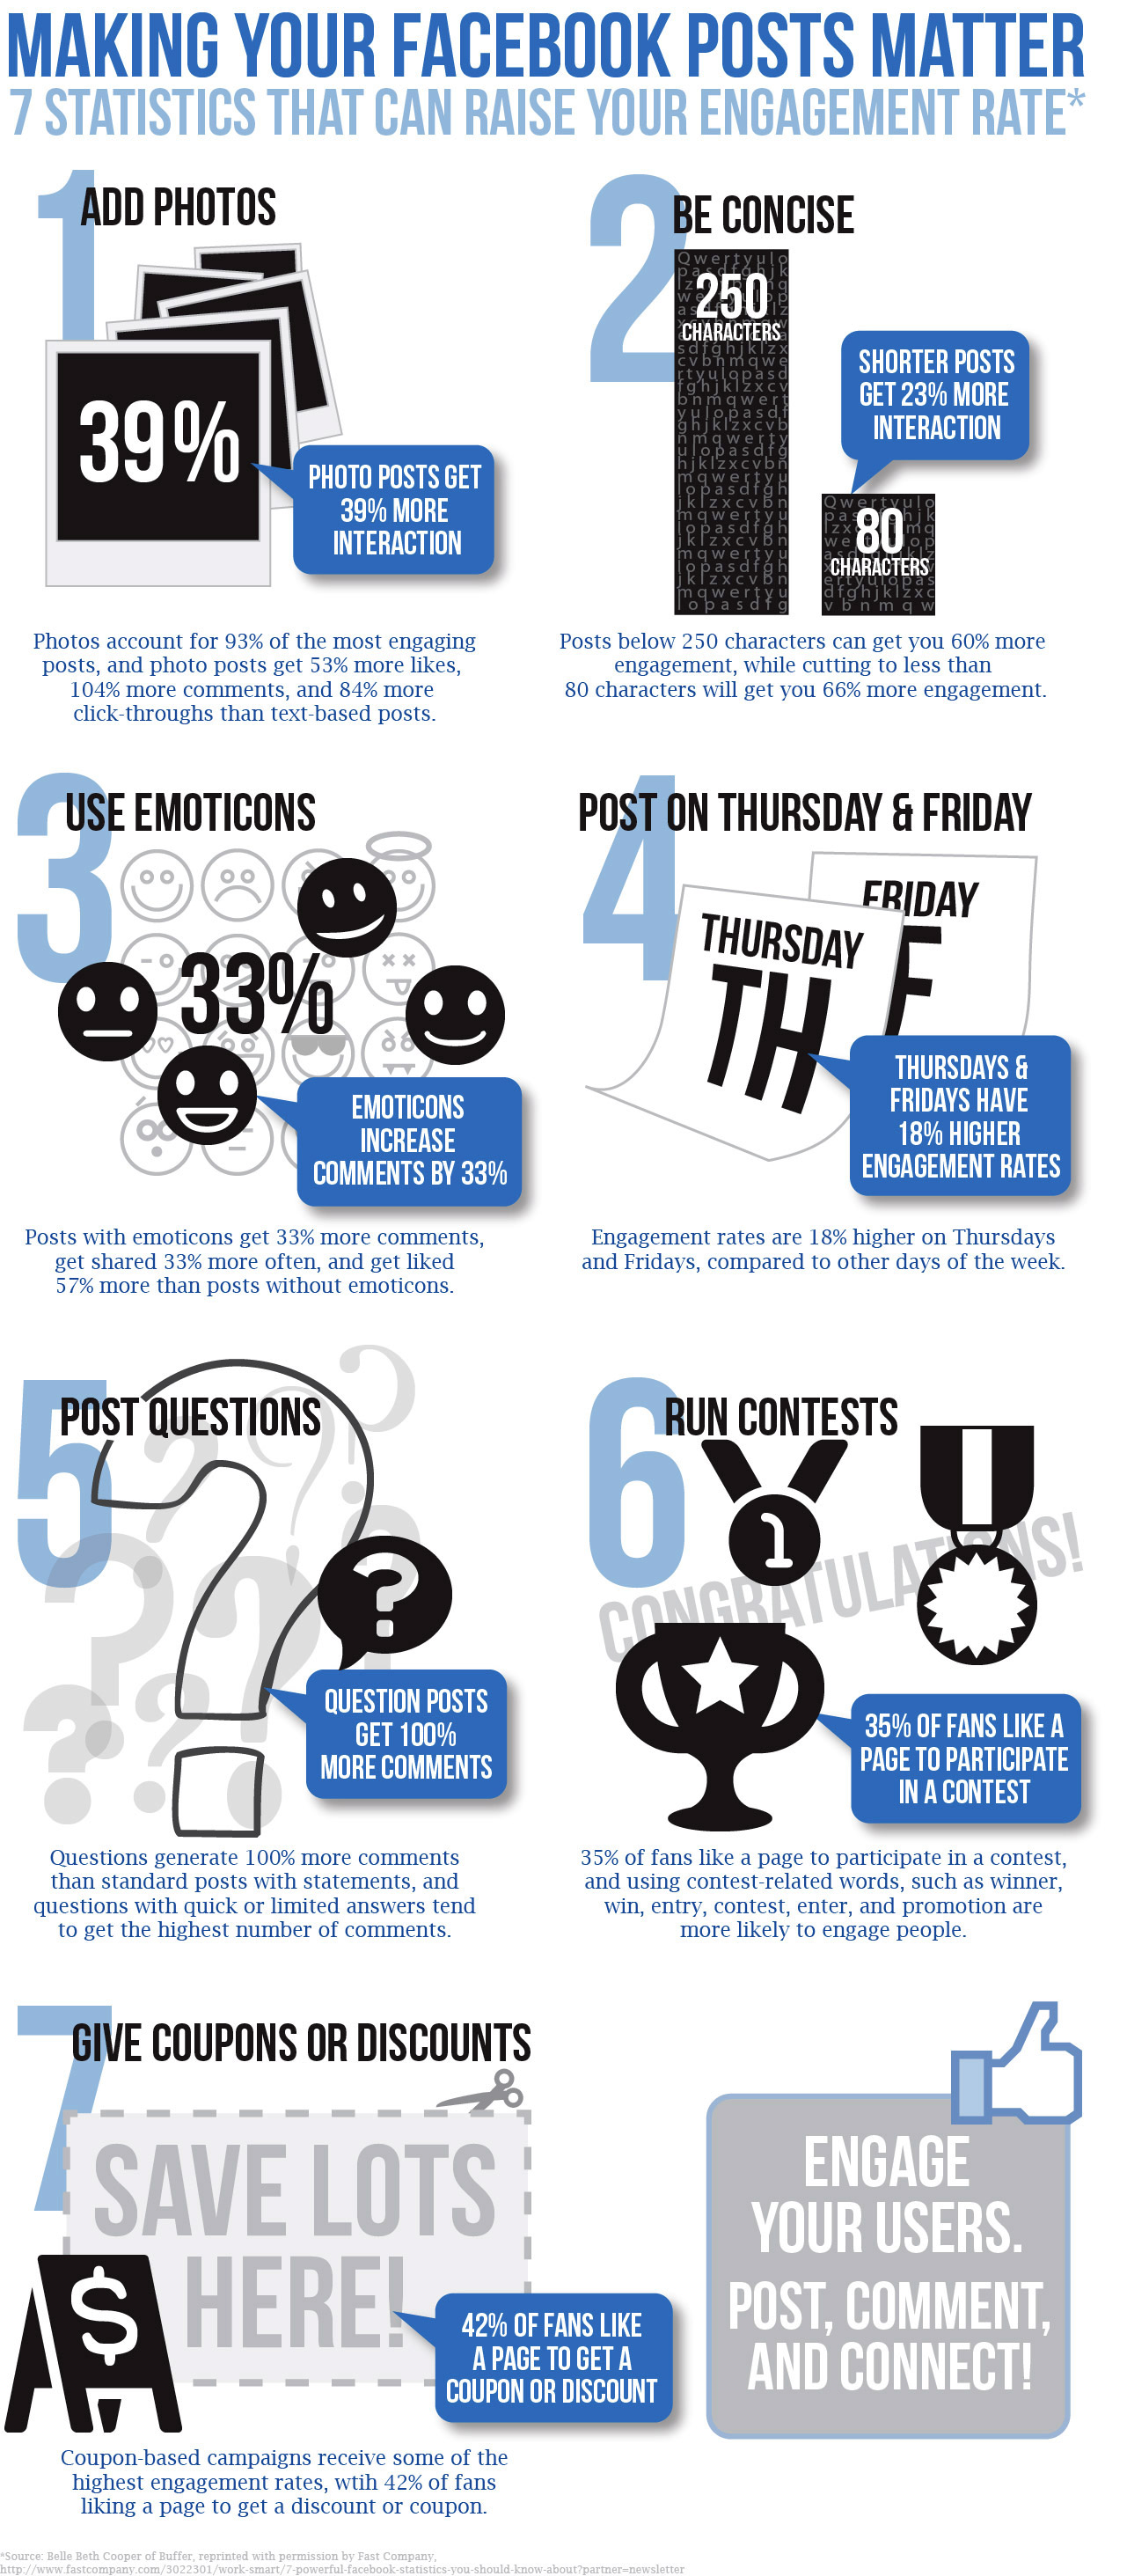 7 ways to raise Facebook engagement